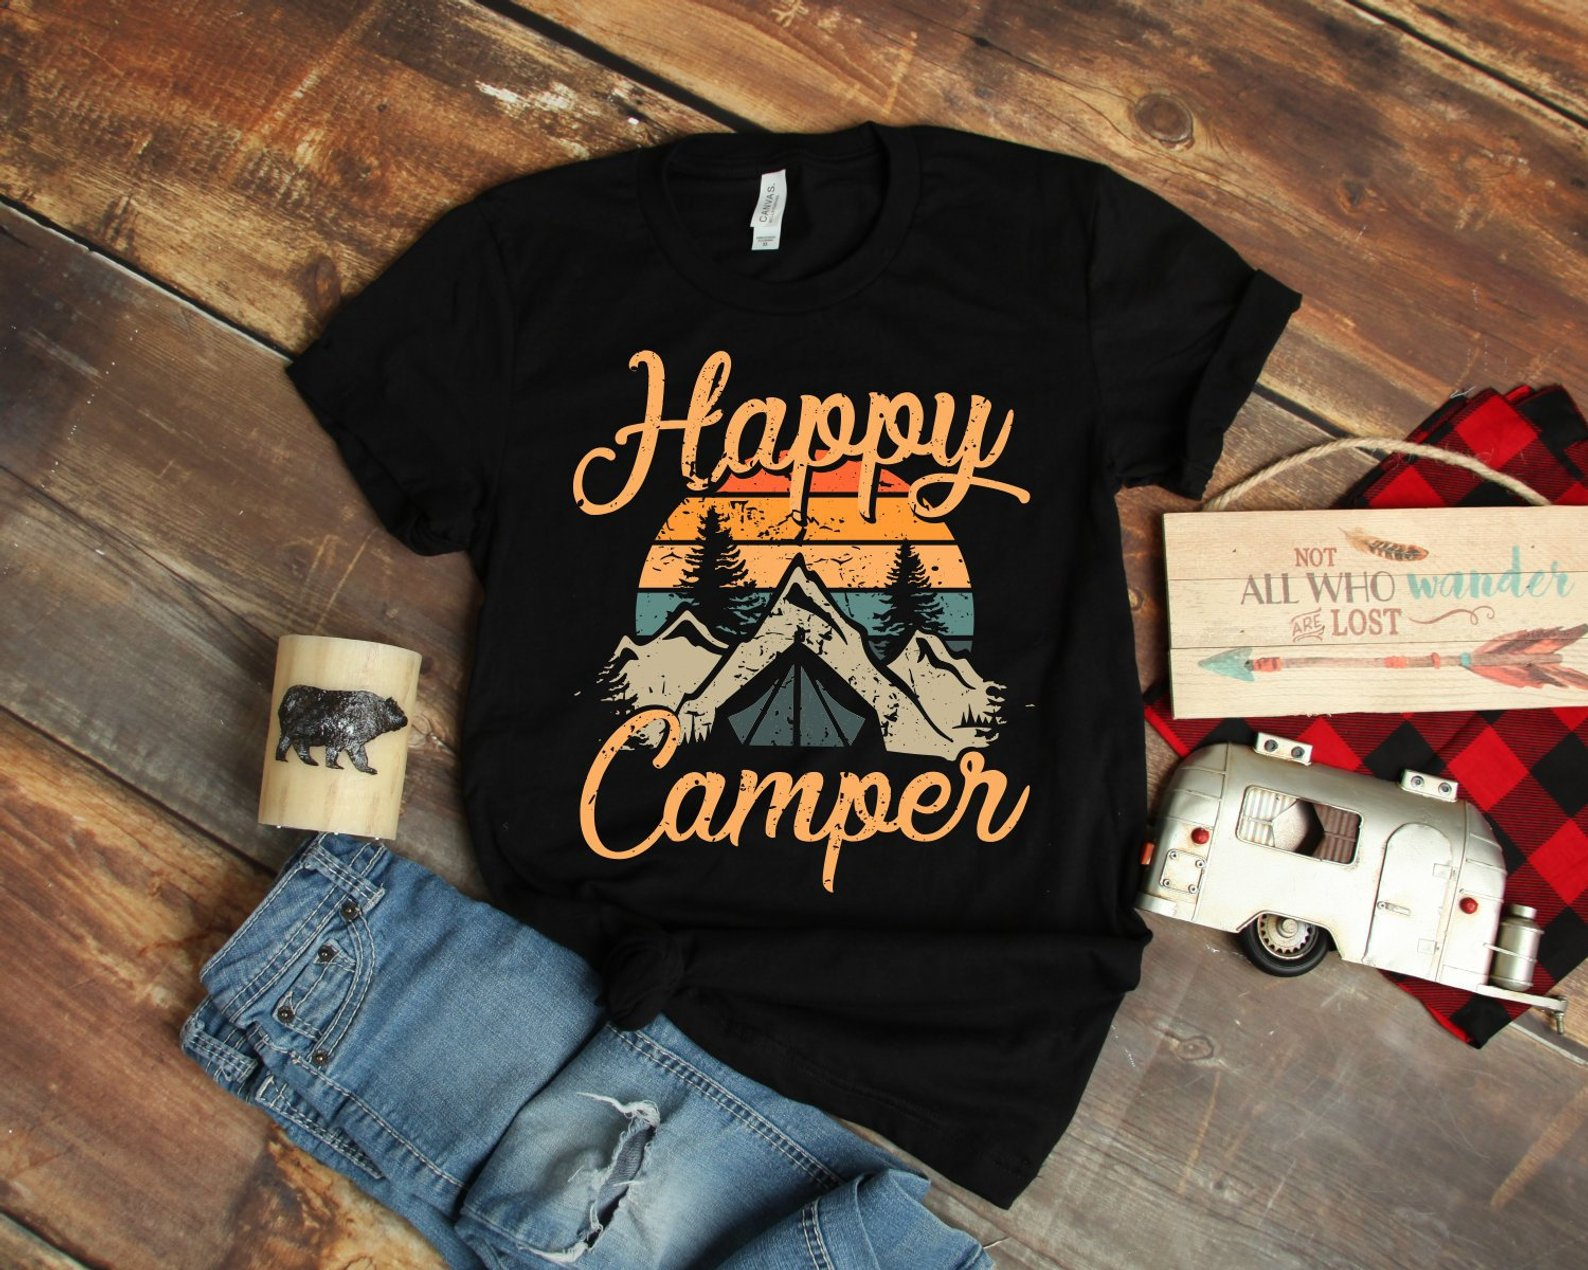 Happy Camper T-Shirt By Super Awesome Threads